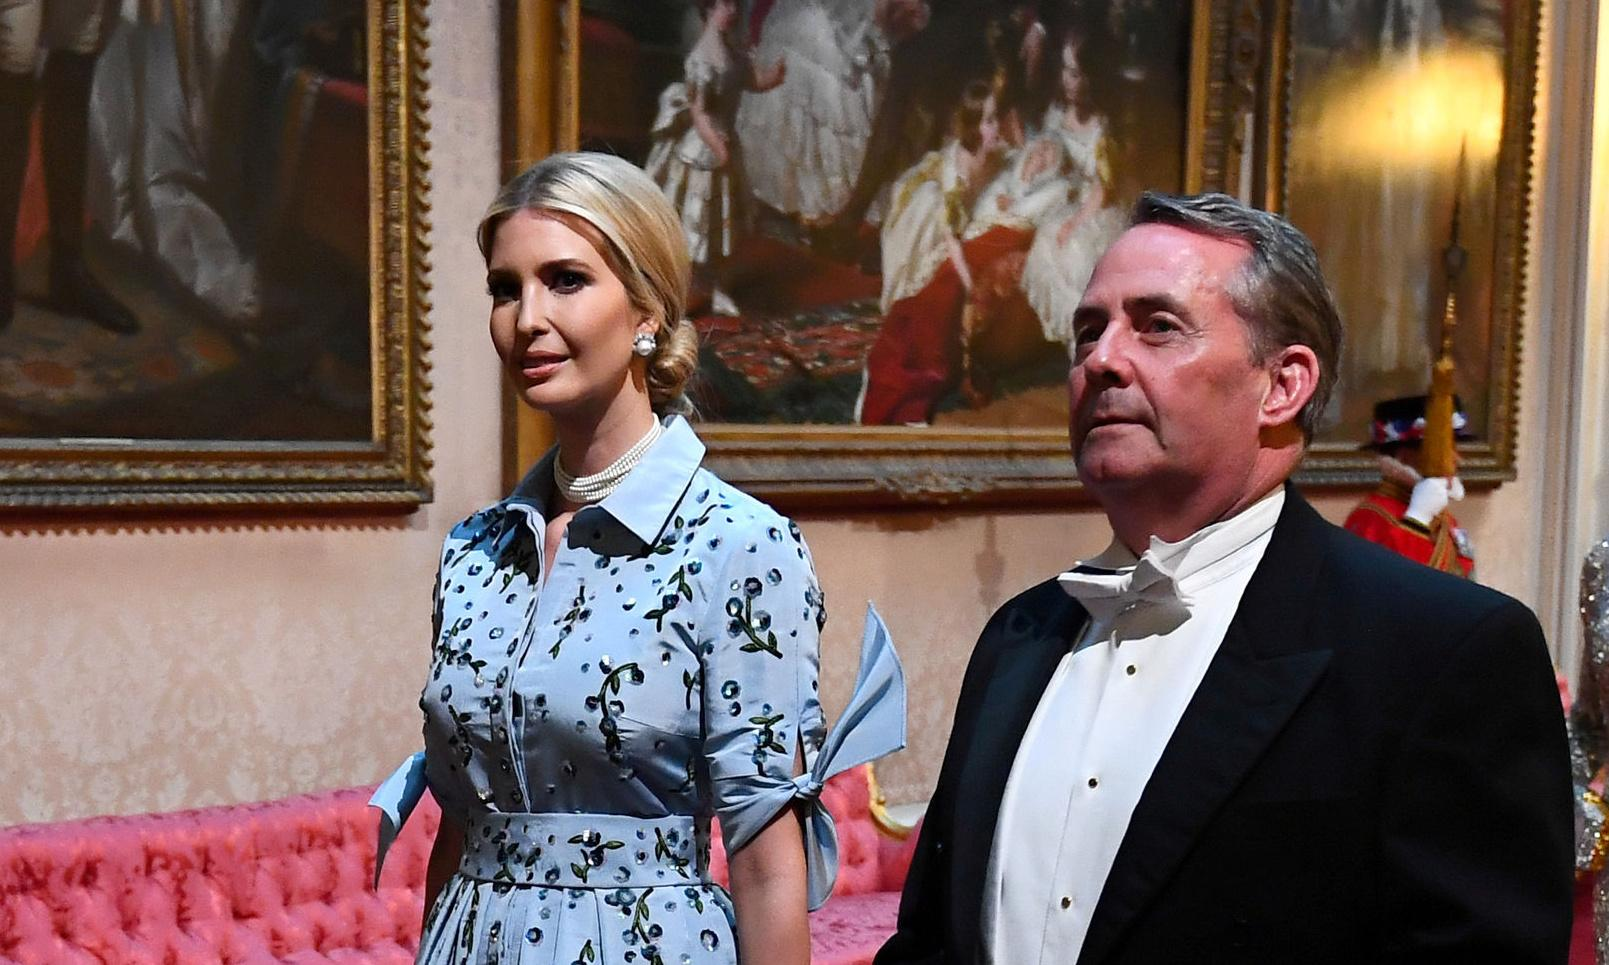 Sorry, but why is Liam Fox apologising to Ivanka Trump?